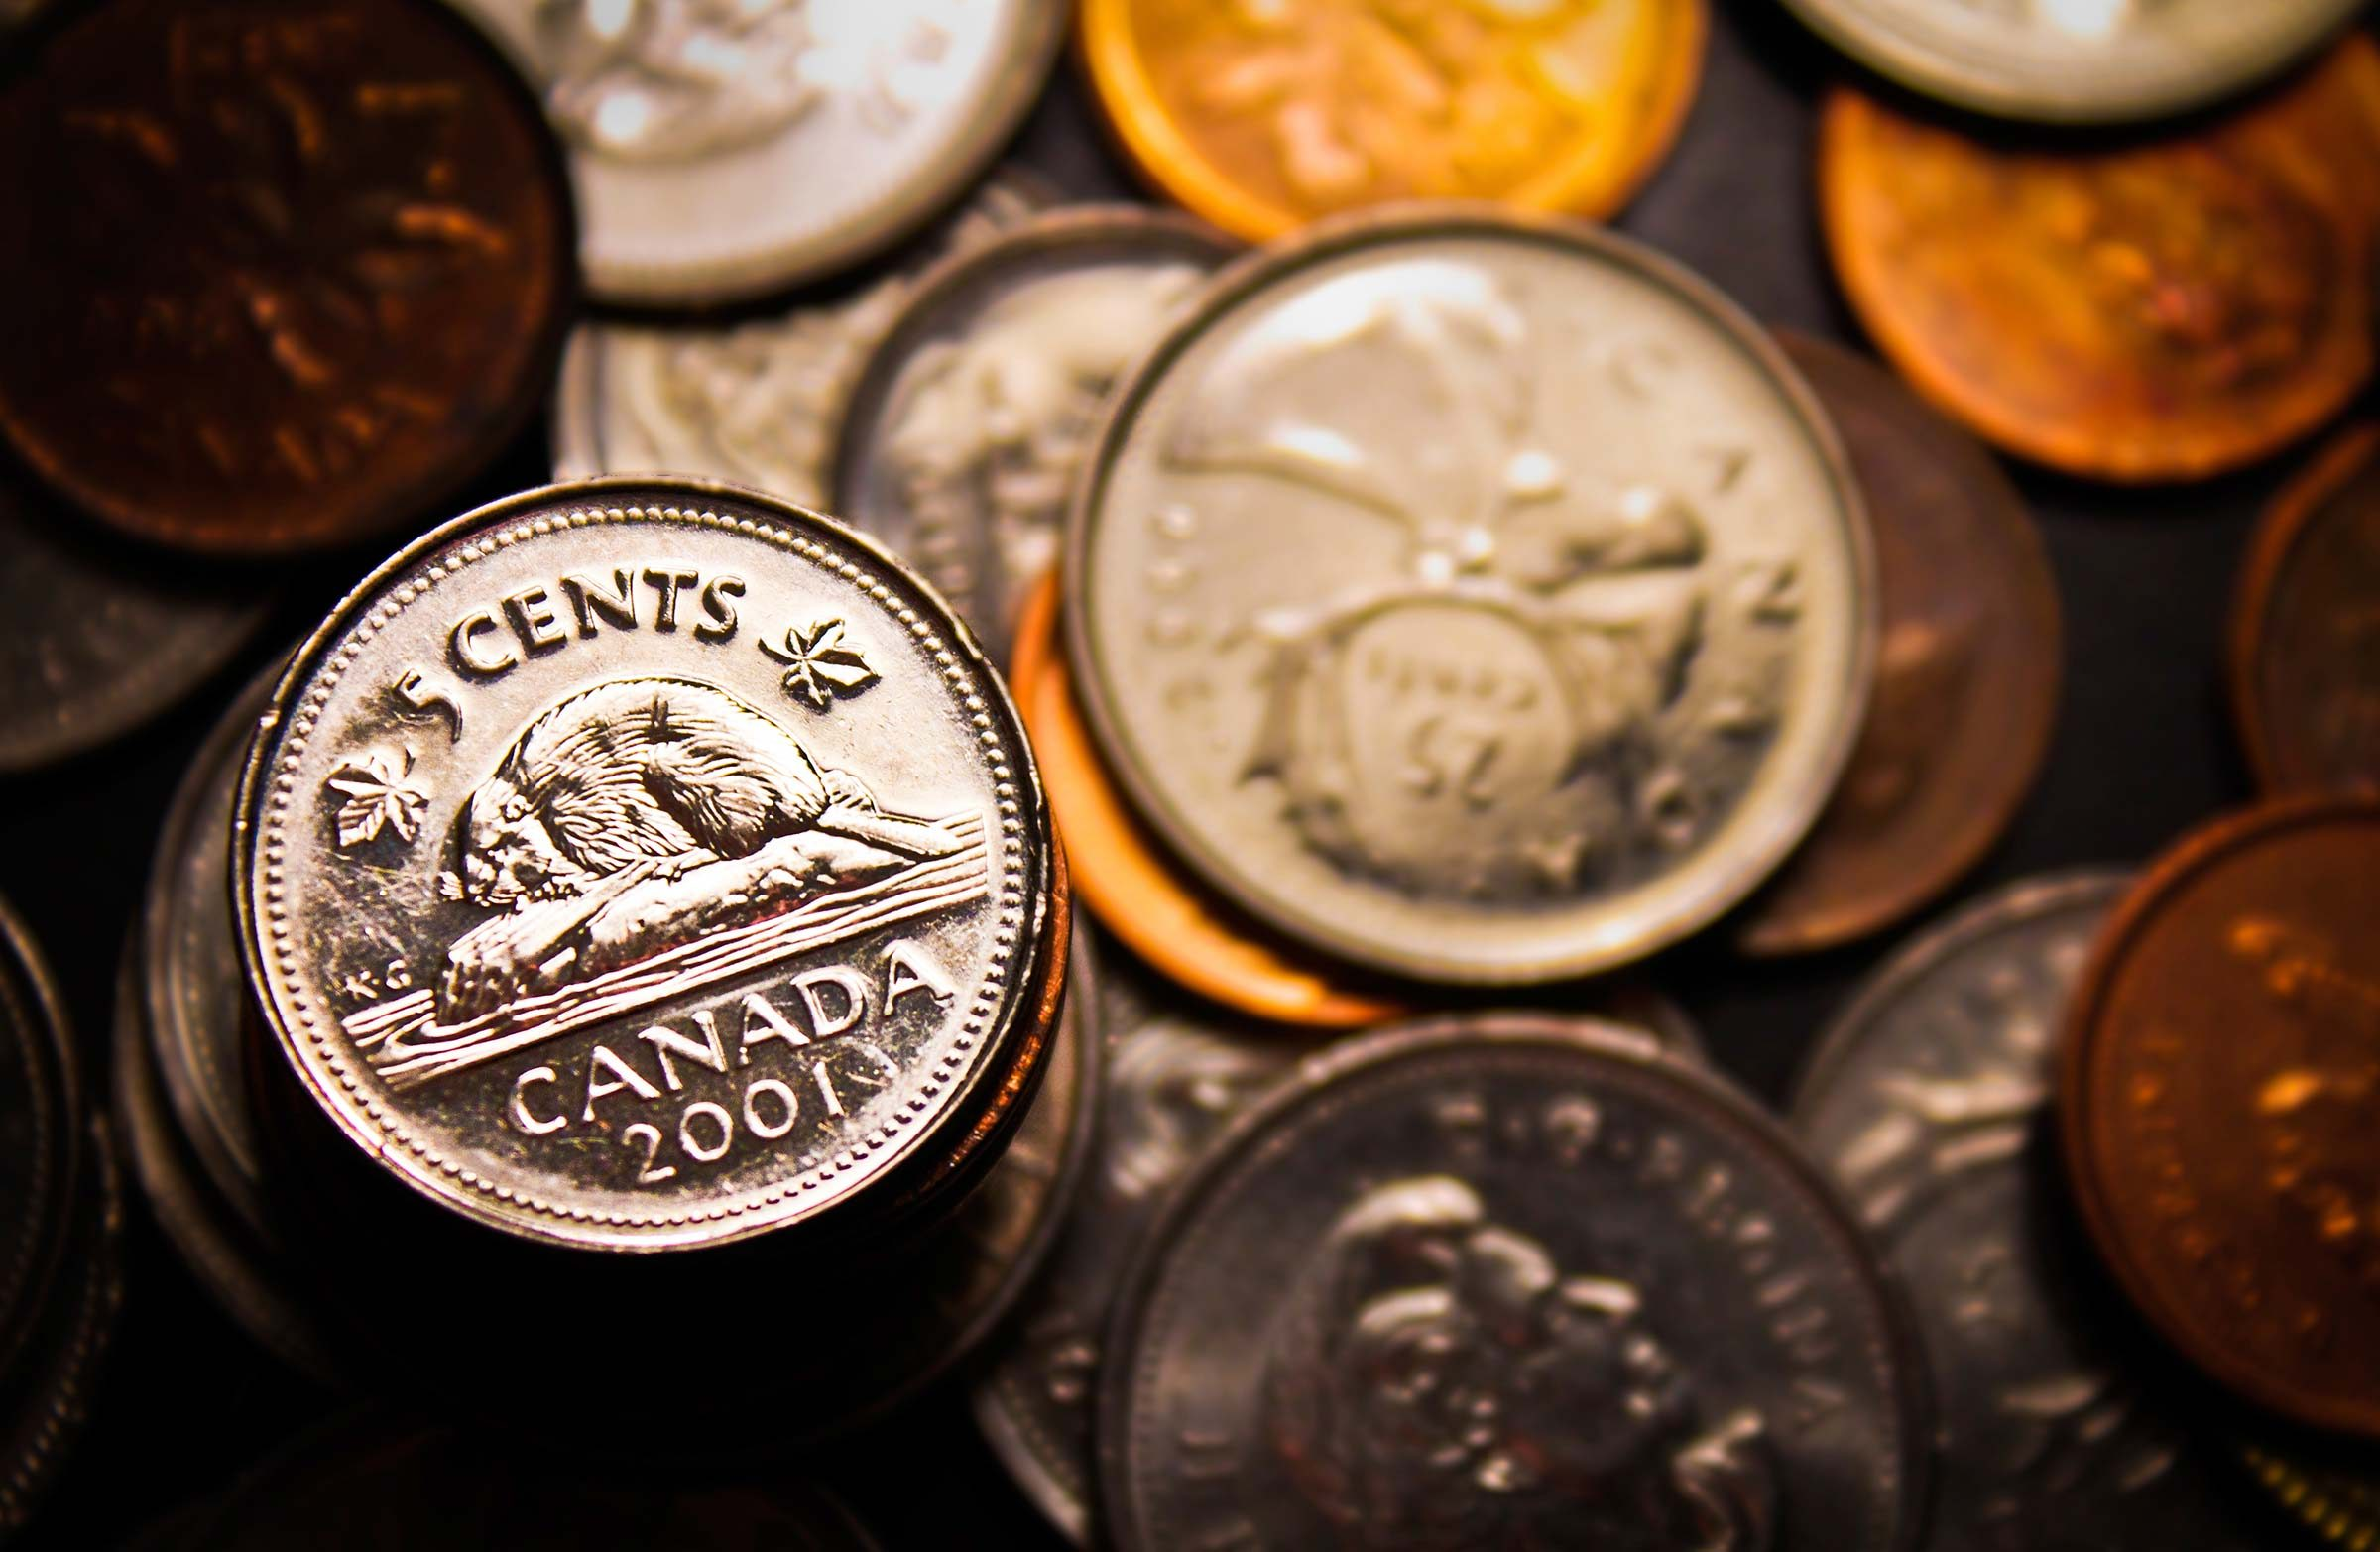 13. Don't empty your piggy bank for purchases in Canada